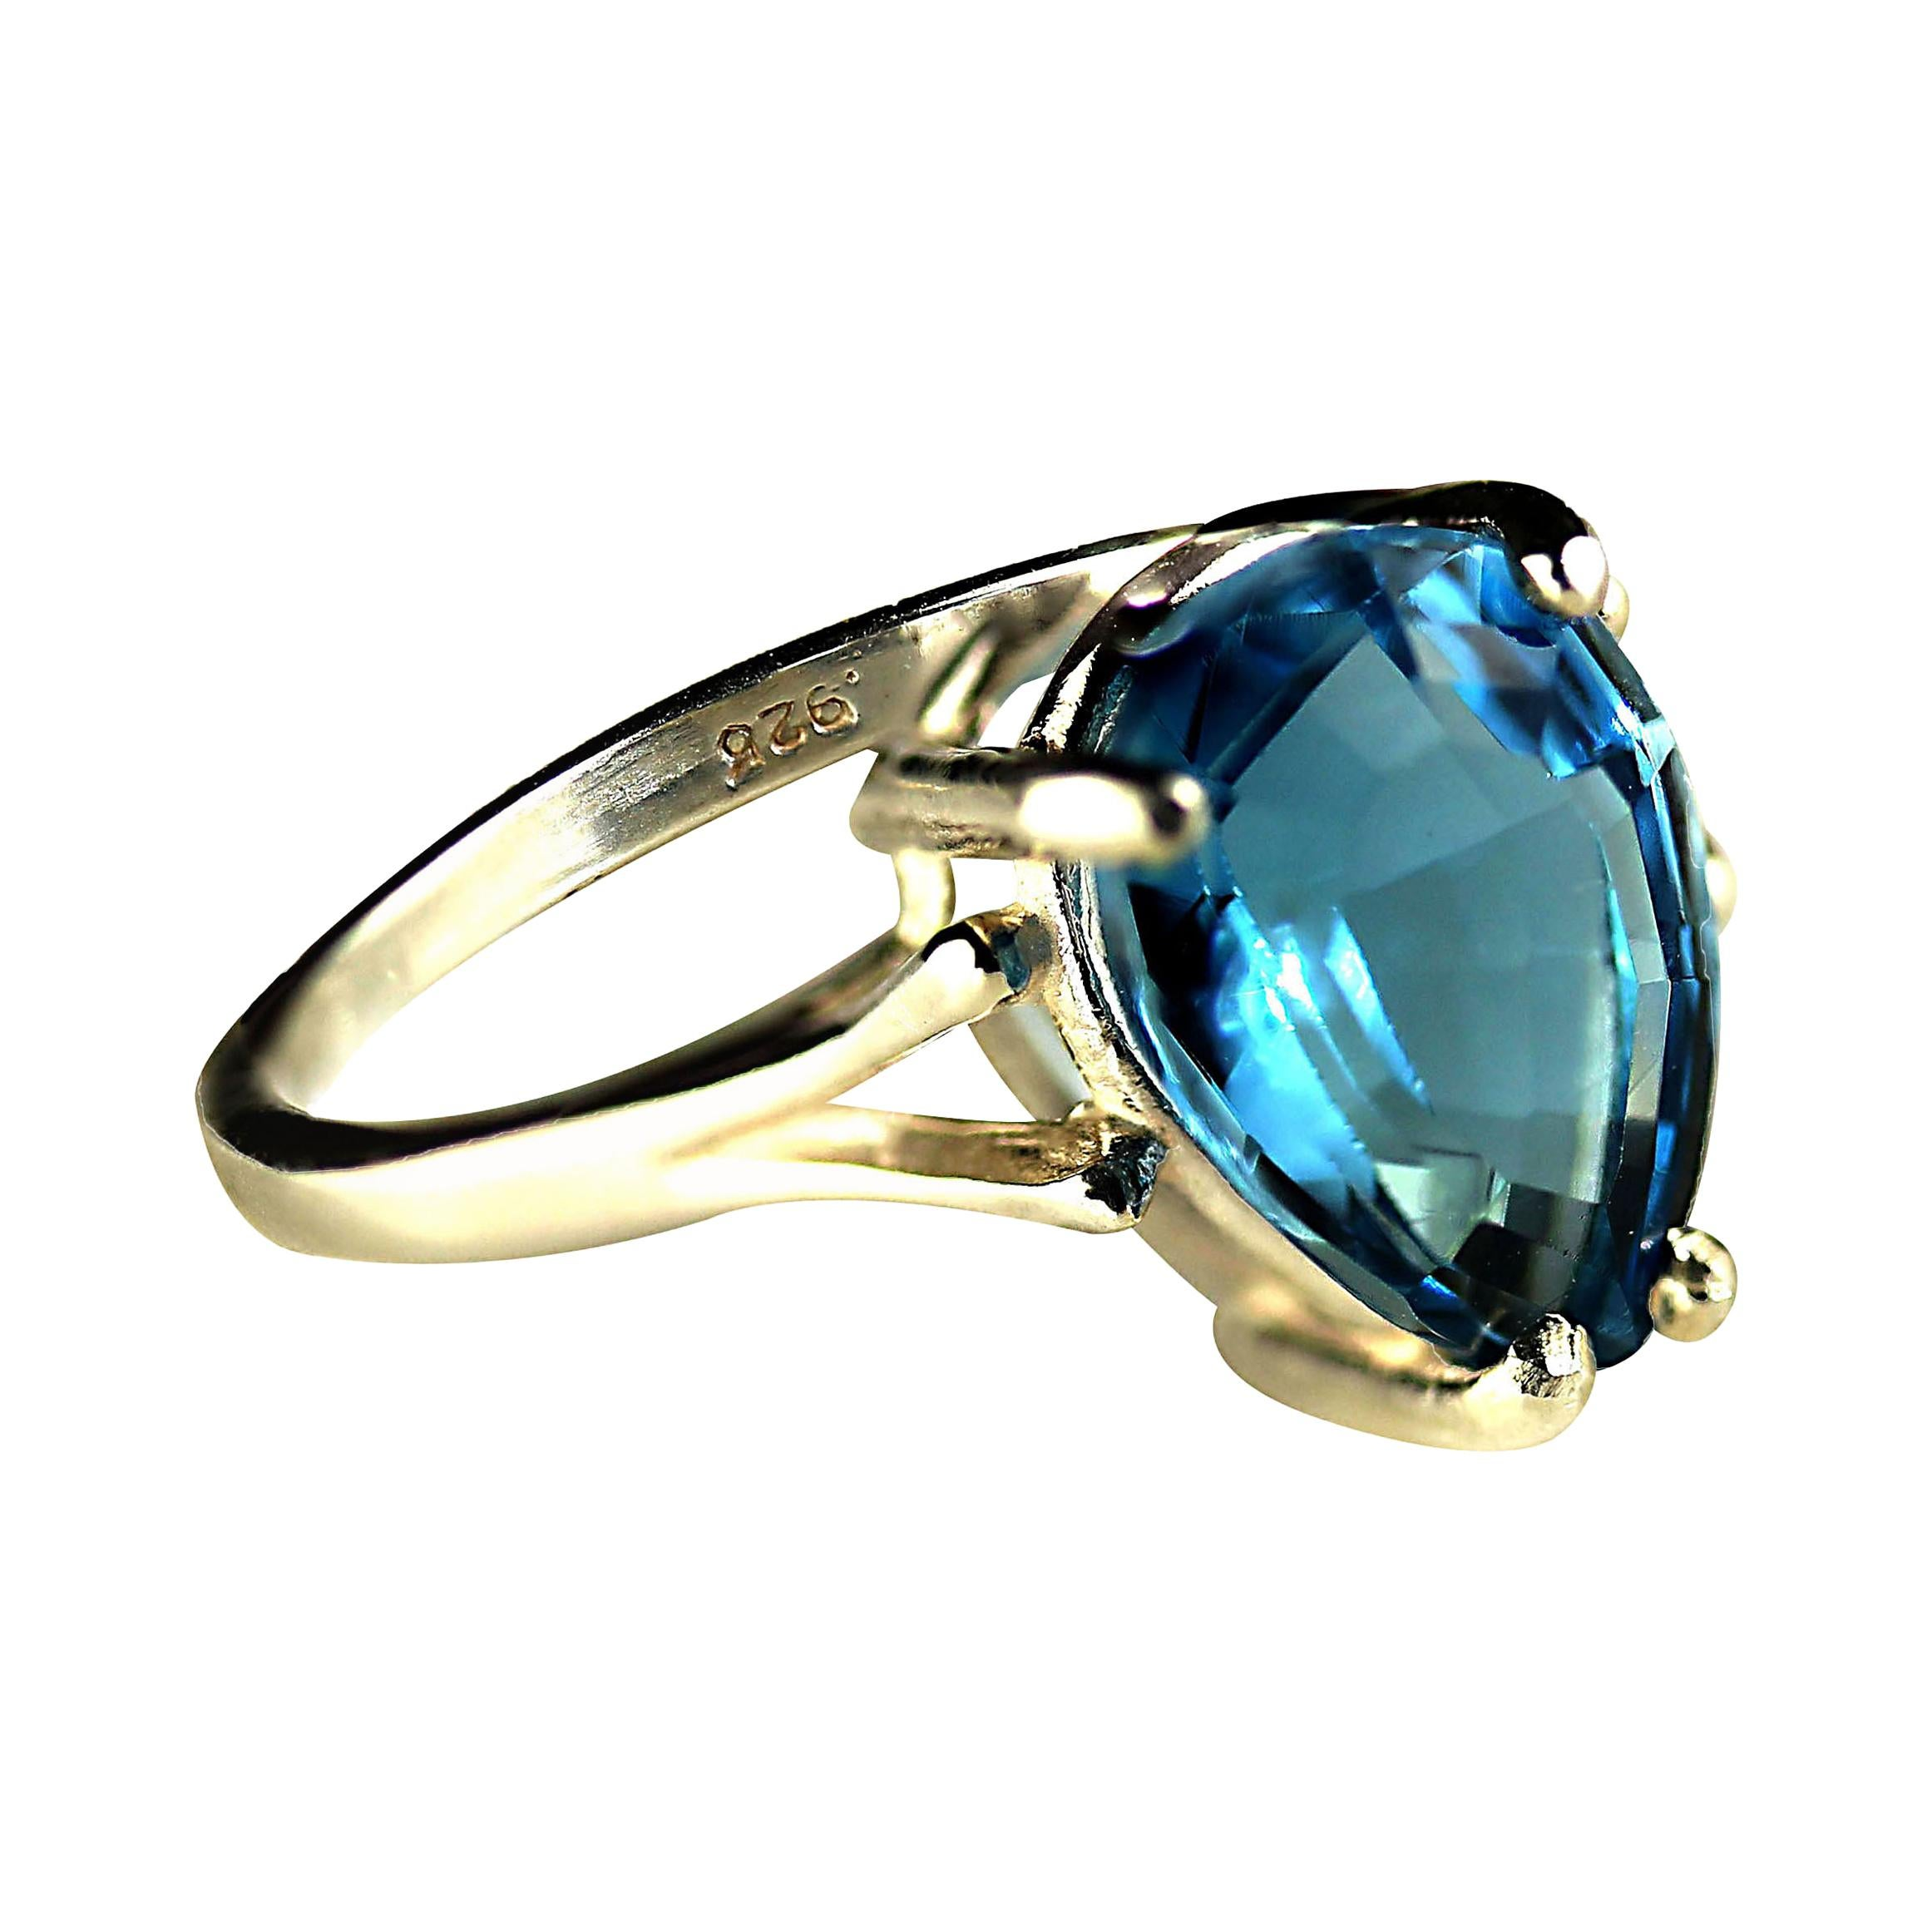 Sparkling Pear Shape Blue Topaz in Sterling Silver Cocktail Ring